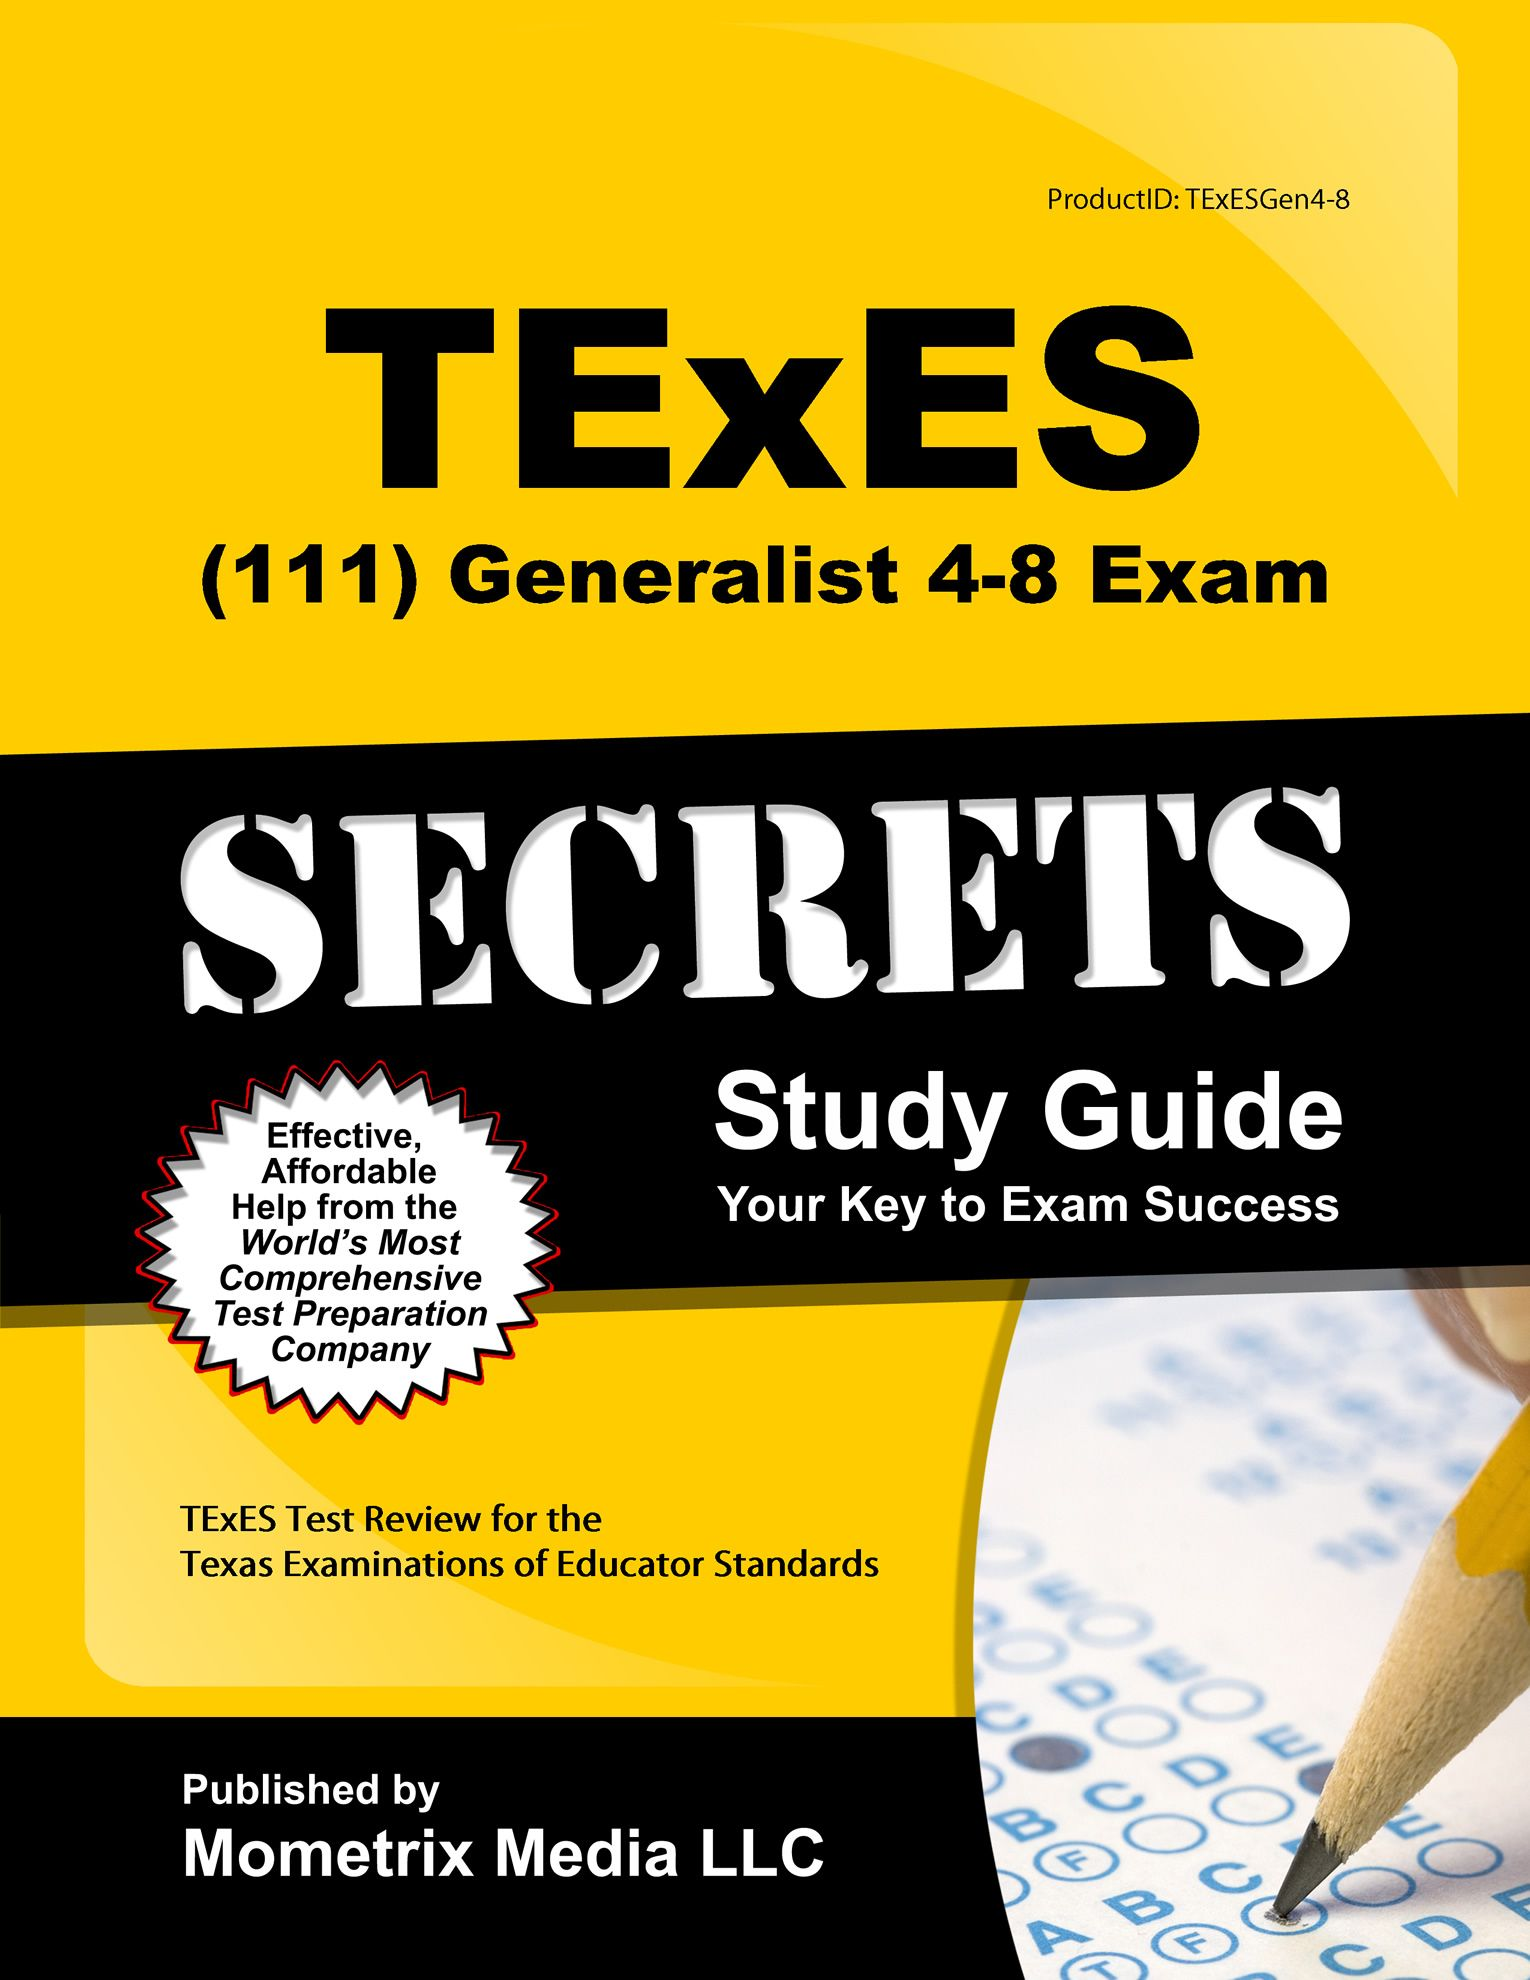 TExES (111) Generalist 4-8 Exam Study Guide http://mo